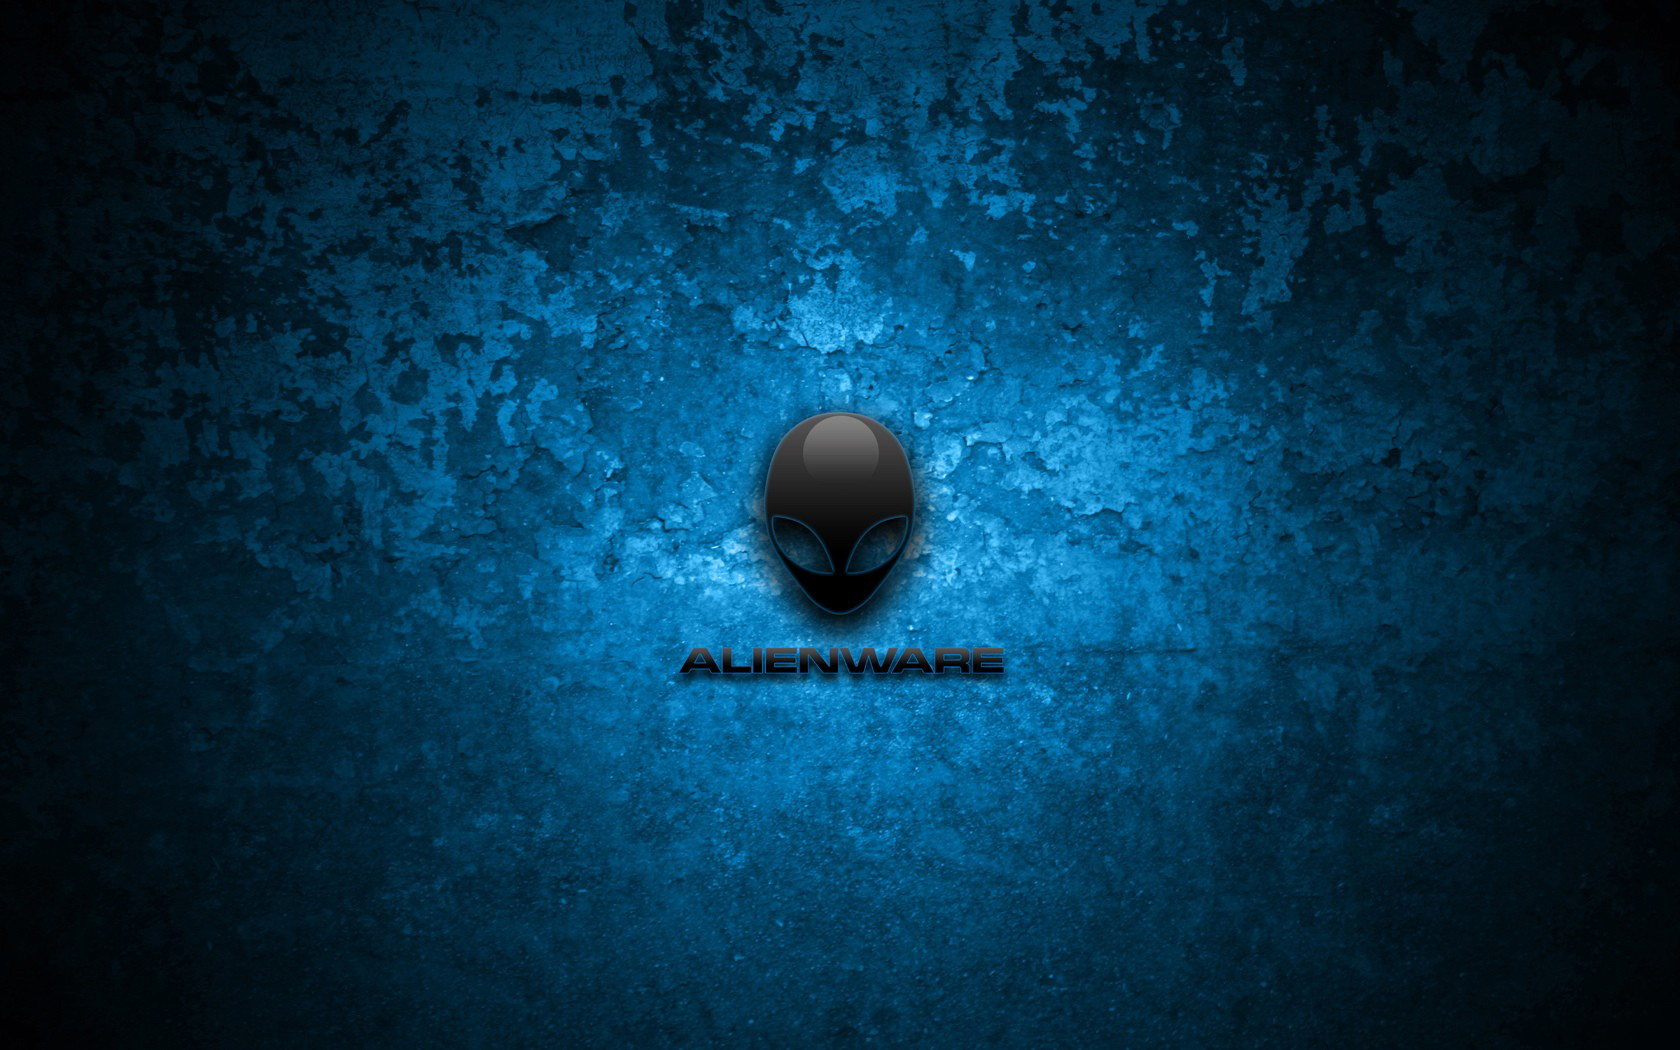 Alienware Wallpaper: Alienware Wallpapers, Pictures, Images